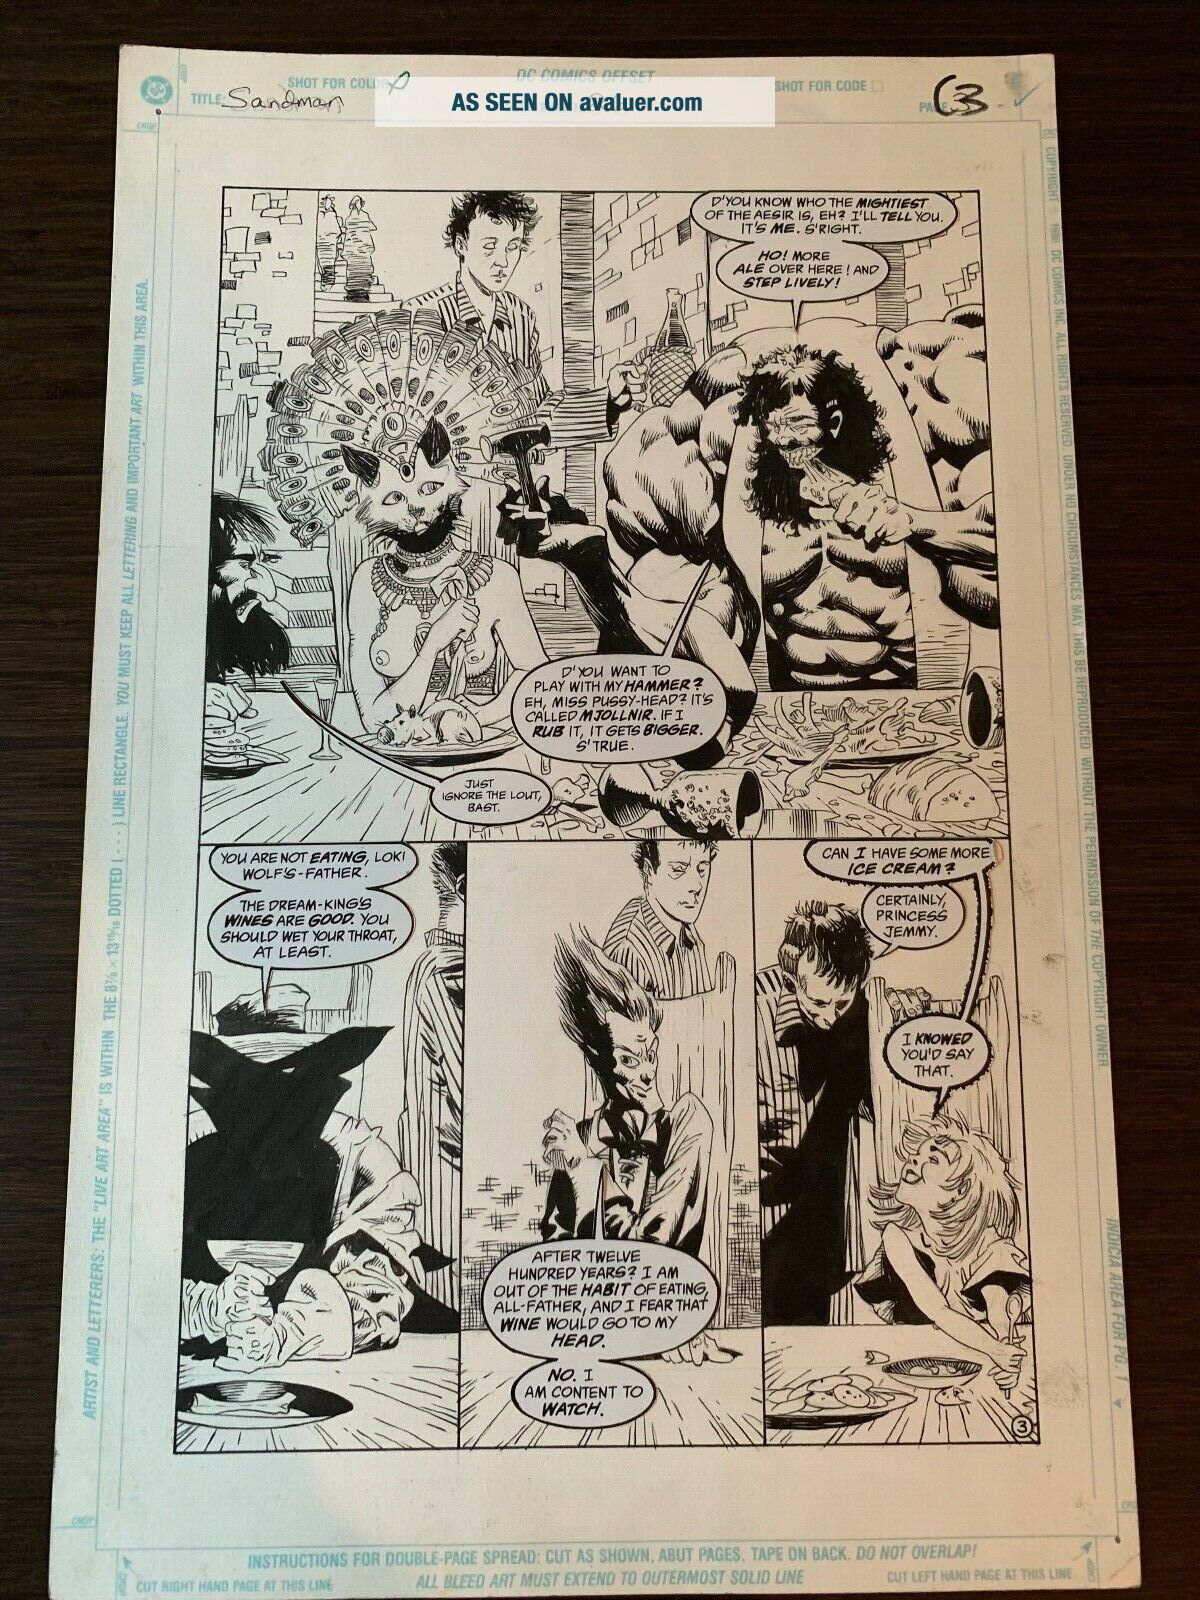 Sandman 26 Page 3 Art Kelley Jones & George Pratt w/ Thor,  Loki,  Odin